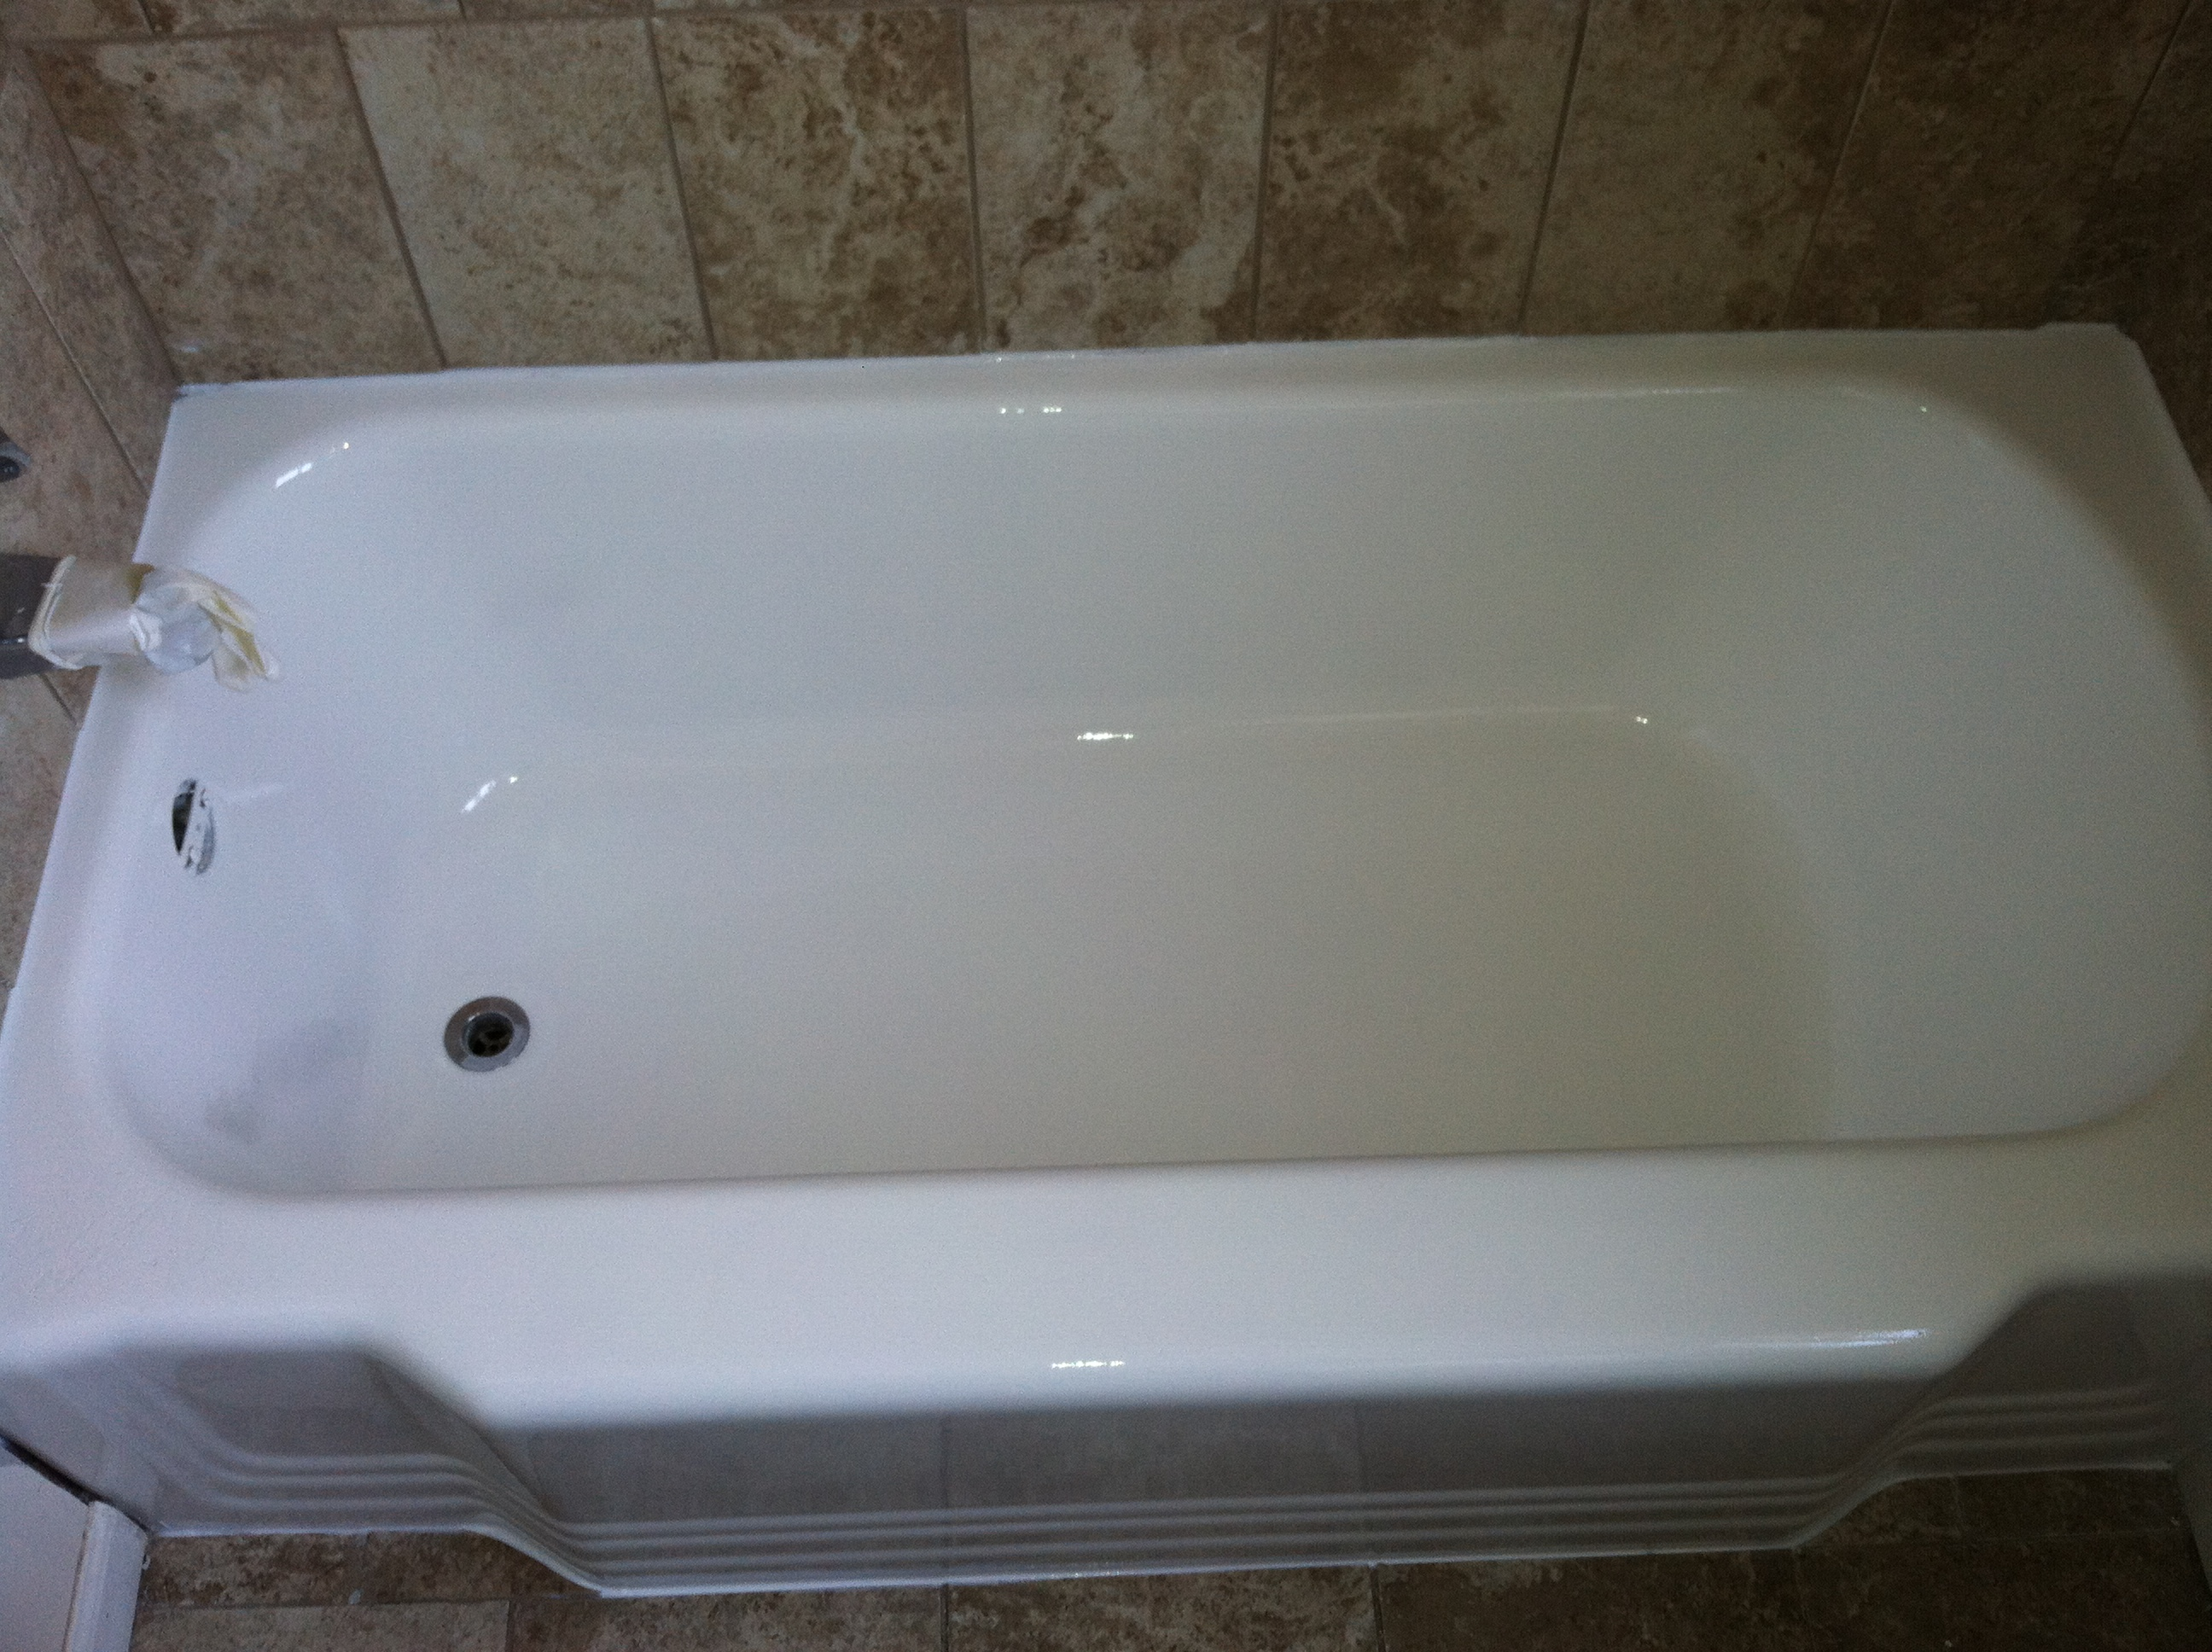 Elegant All Amazing Bathtub Refinishing Tampa FL Surfaces Come With A 10 Year  Guarantee! Call Us Now: (813) 922 2880